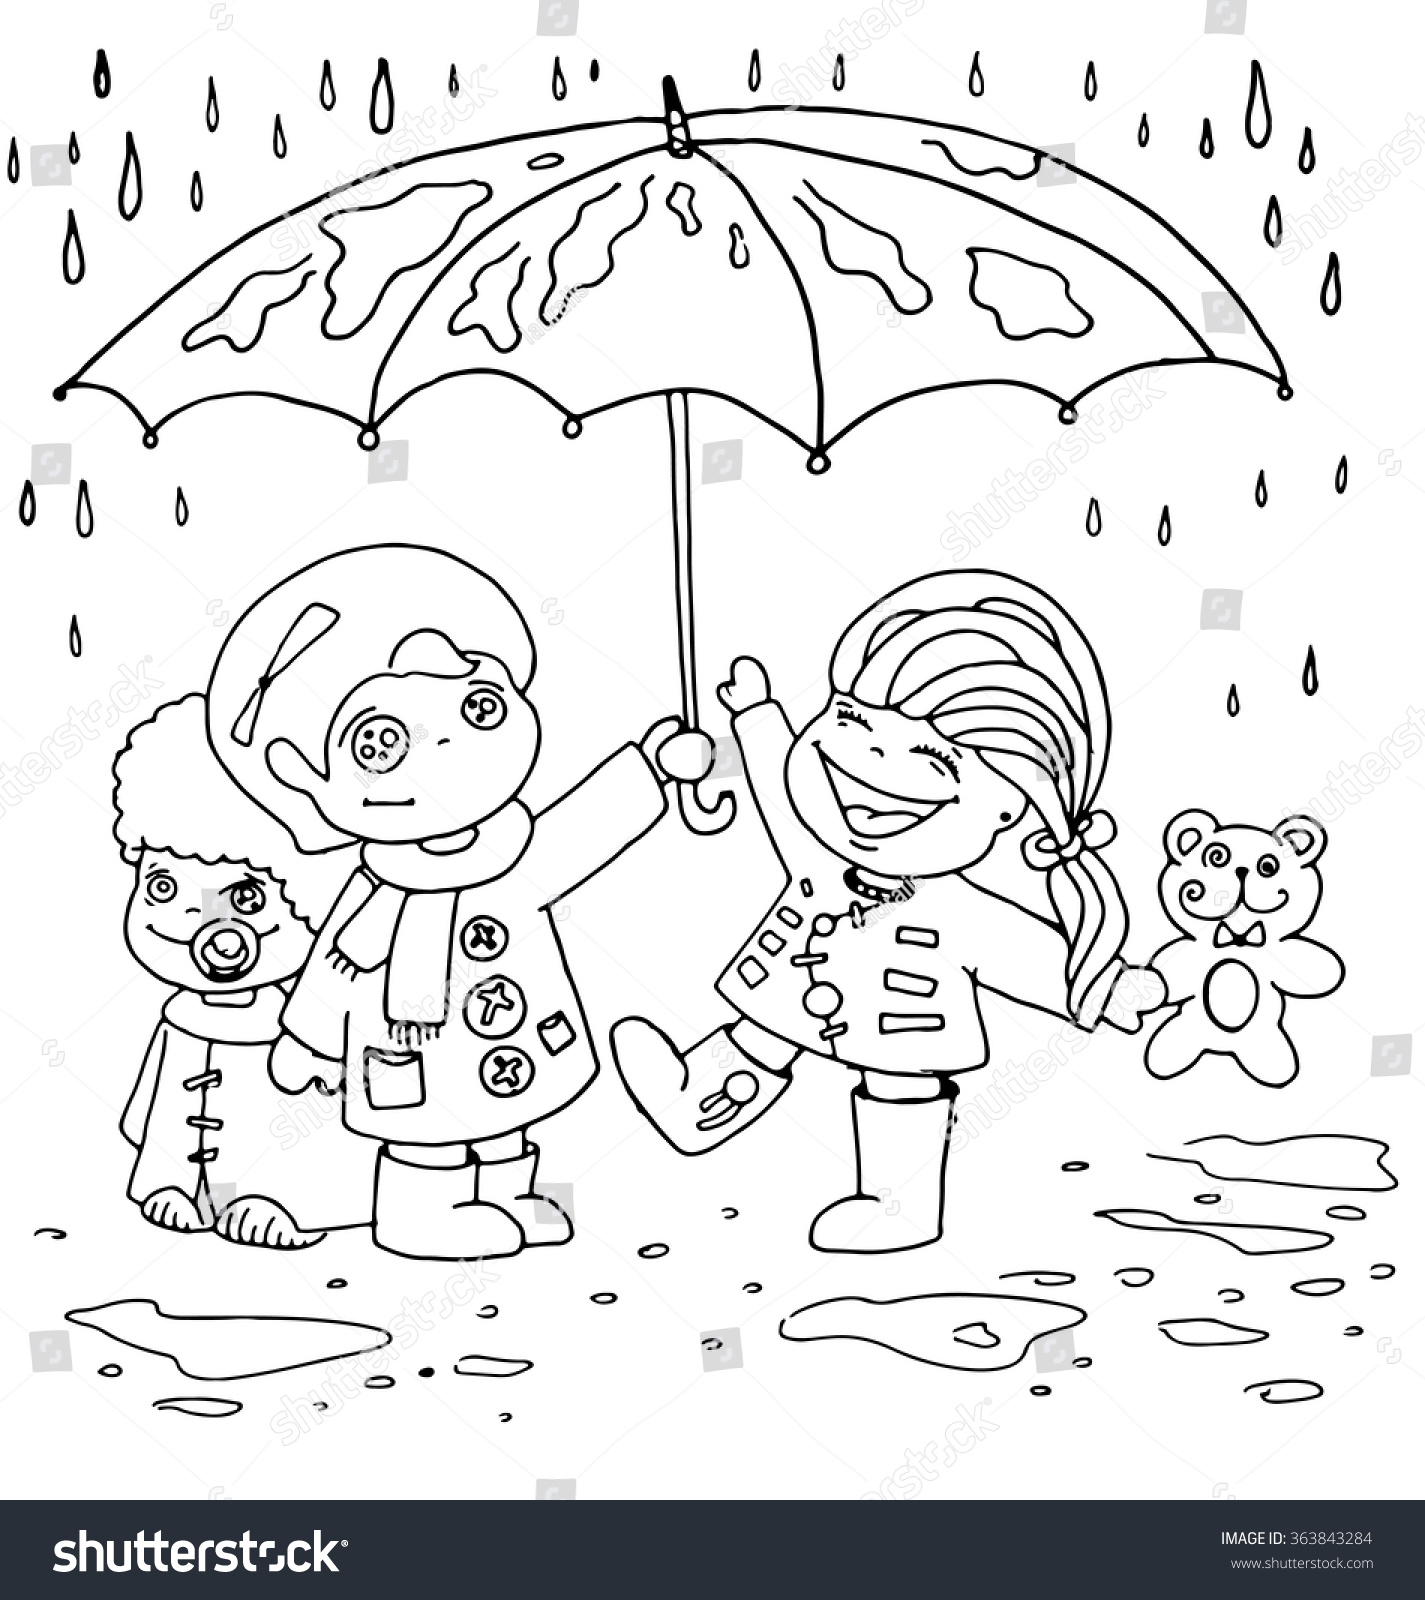 Children Hid Under Umbrella Rain Outline Stock Vector